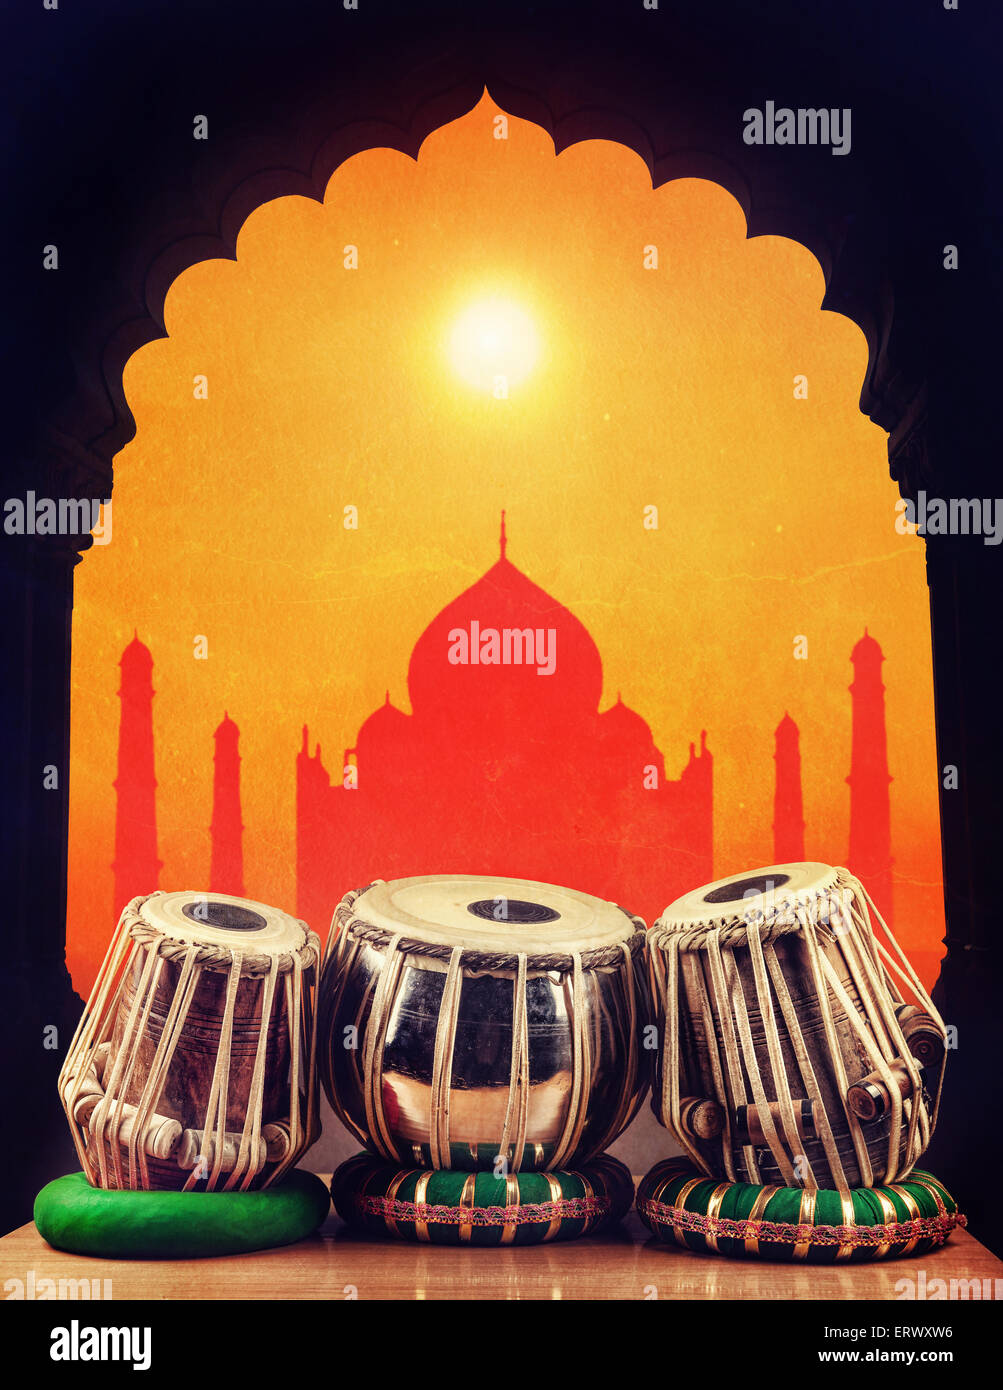 Indian classical music instrument tabla drums at Taj Mahal background in India - Stock Image